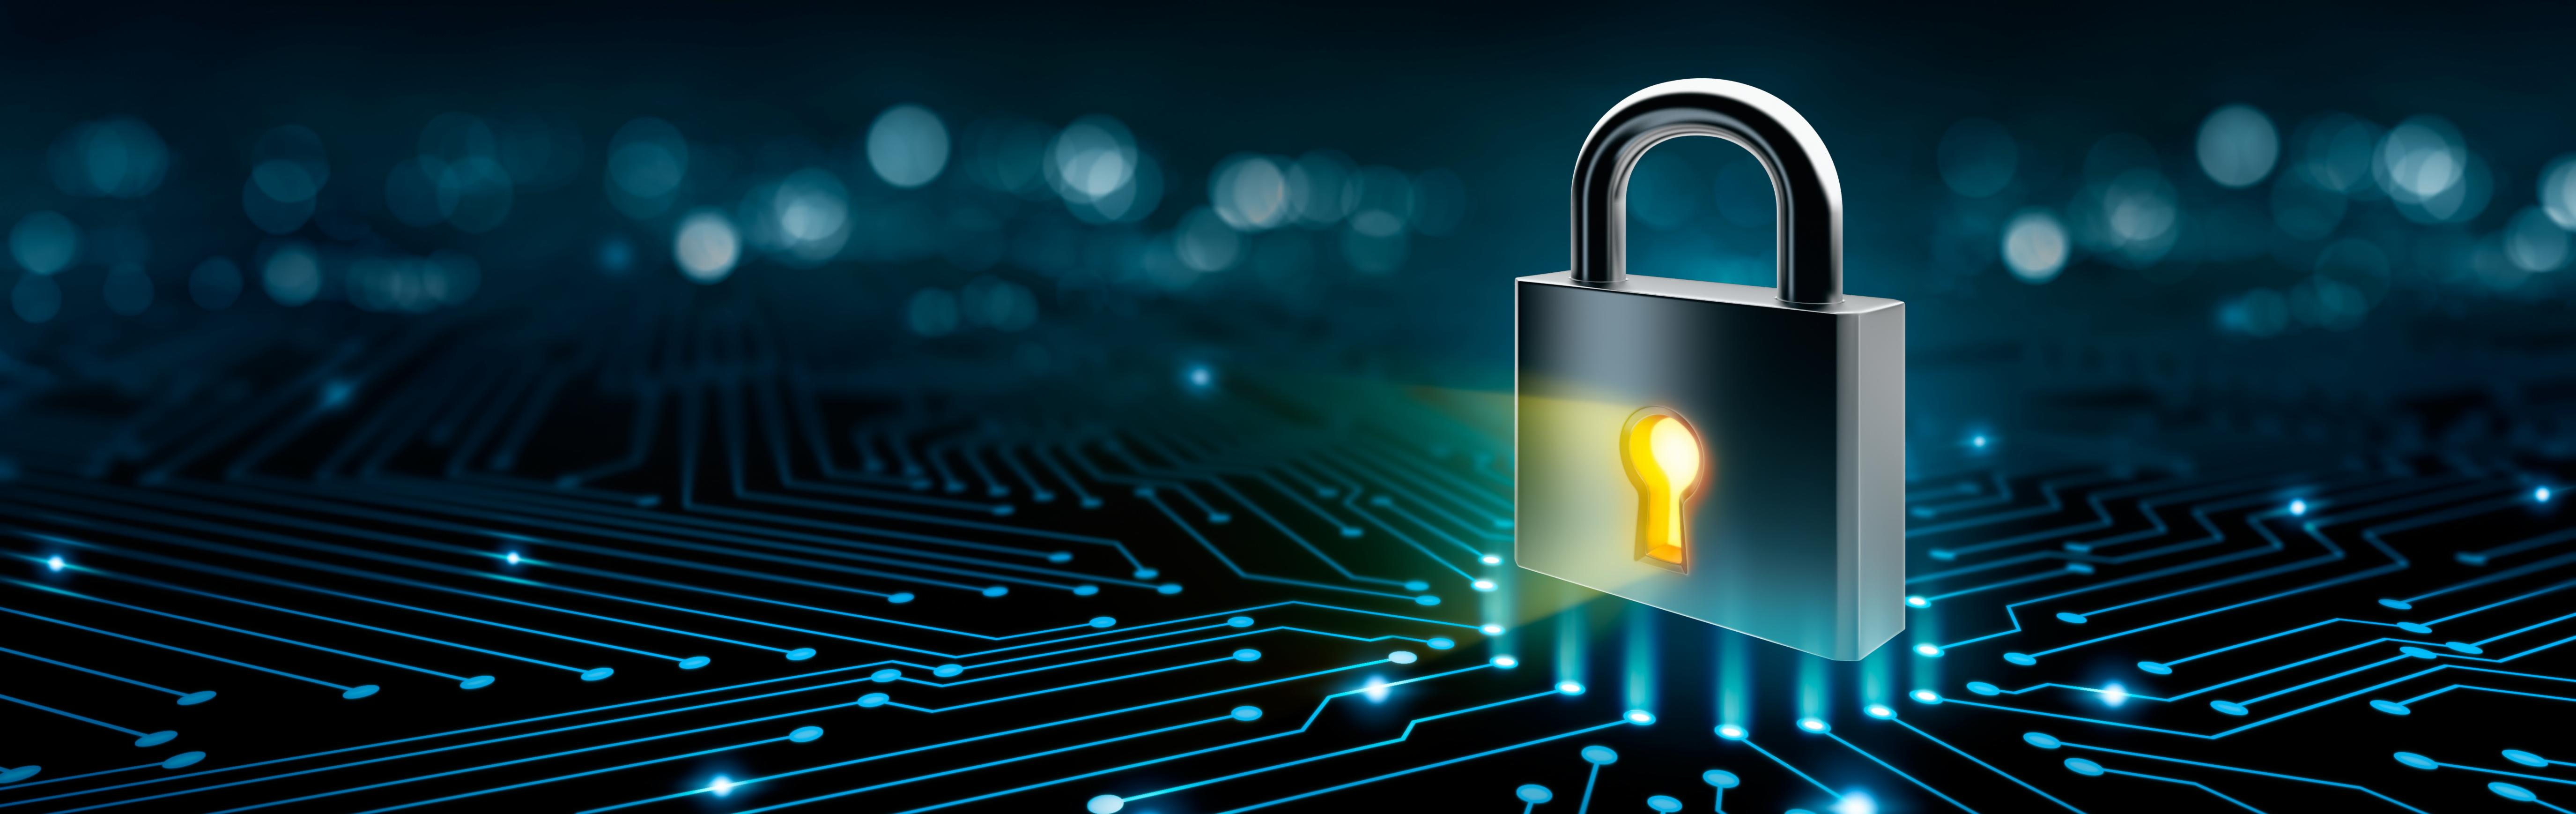 Data Security: How Safe Is Your Member Data?